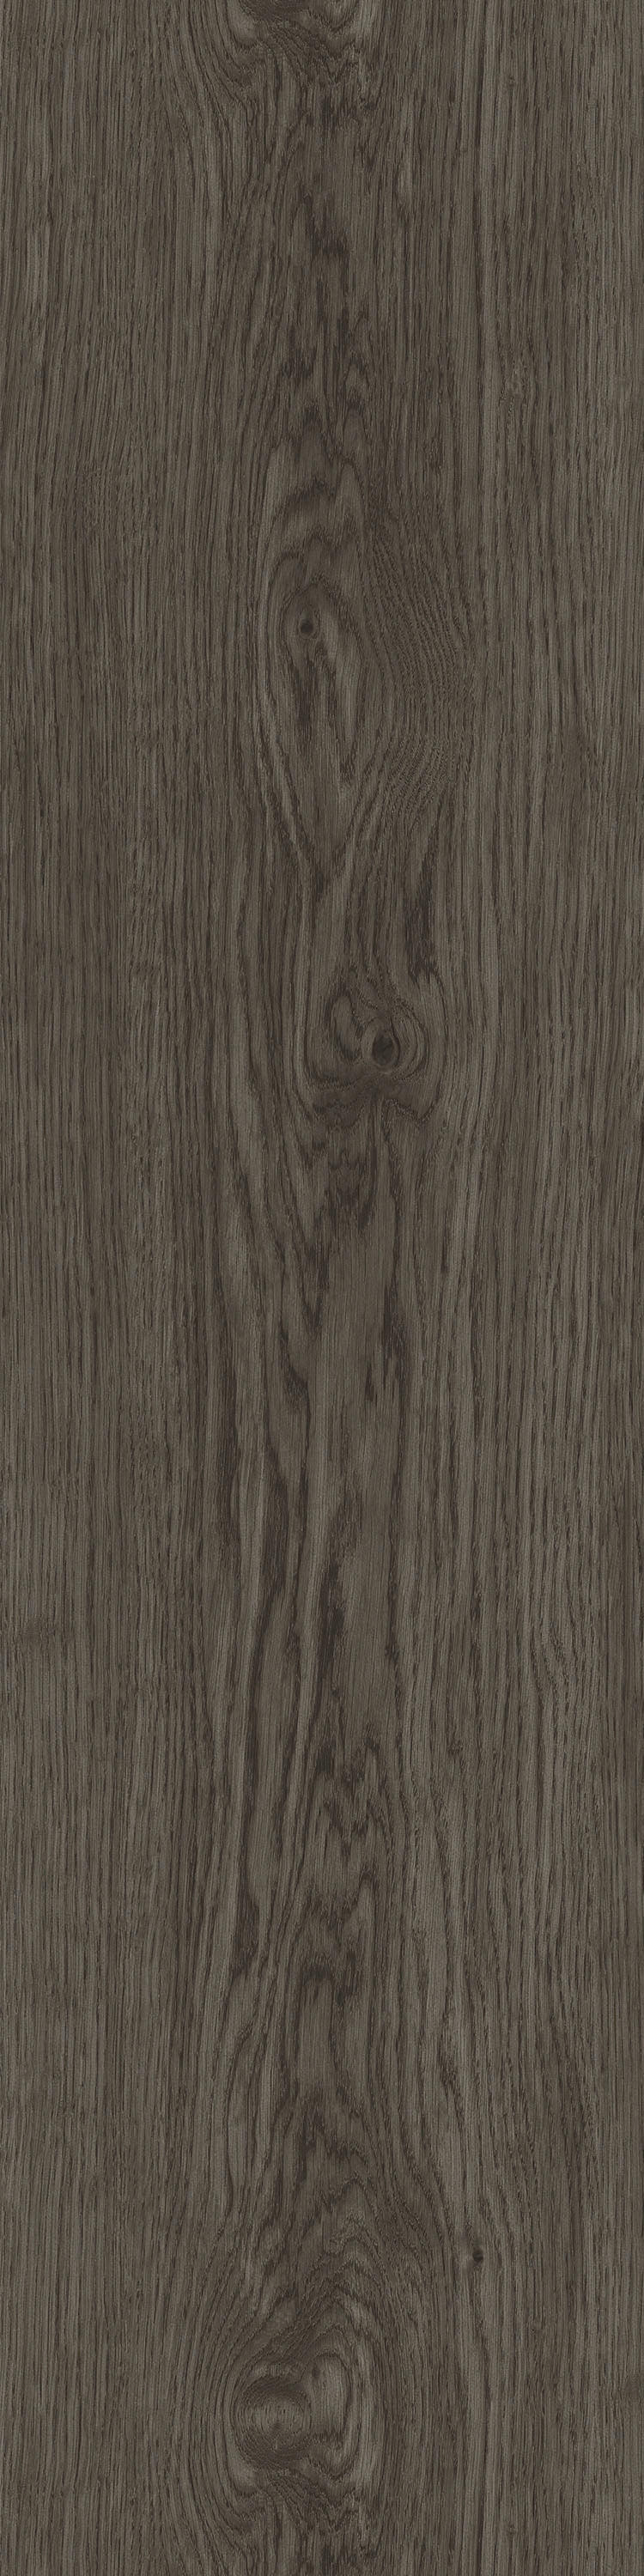 Level Set Natural Woodgrains A00205 Storm Synthetic